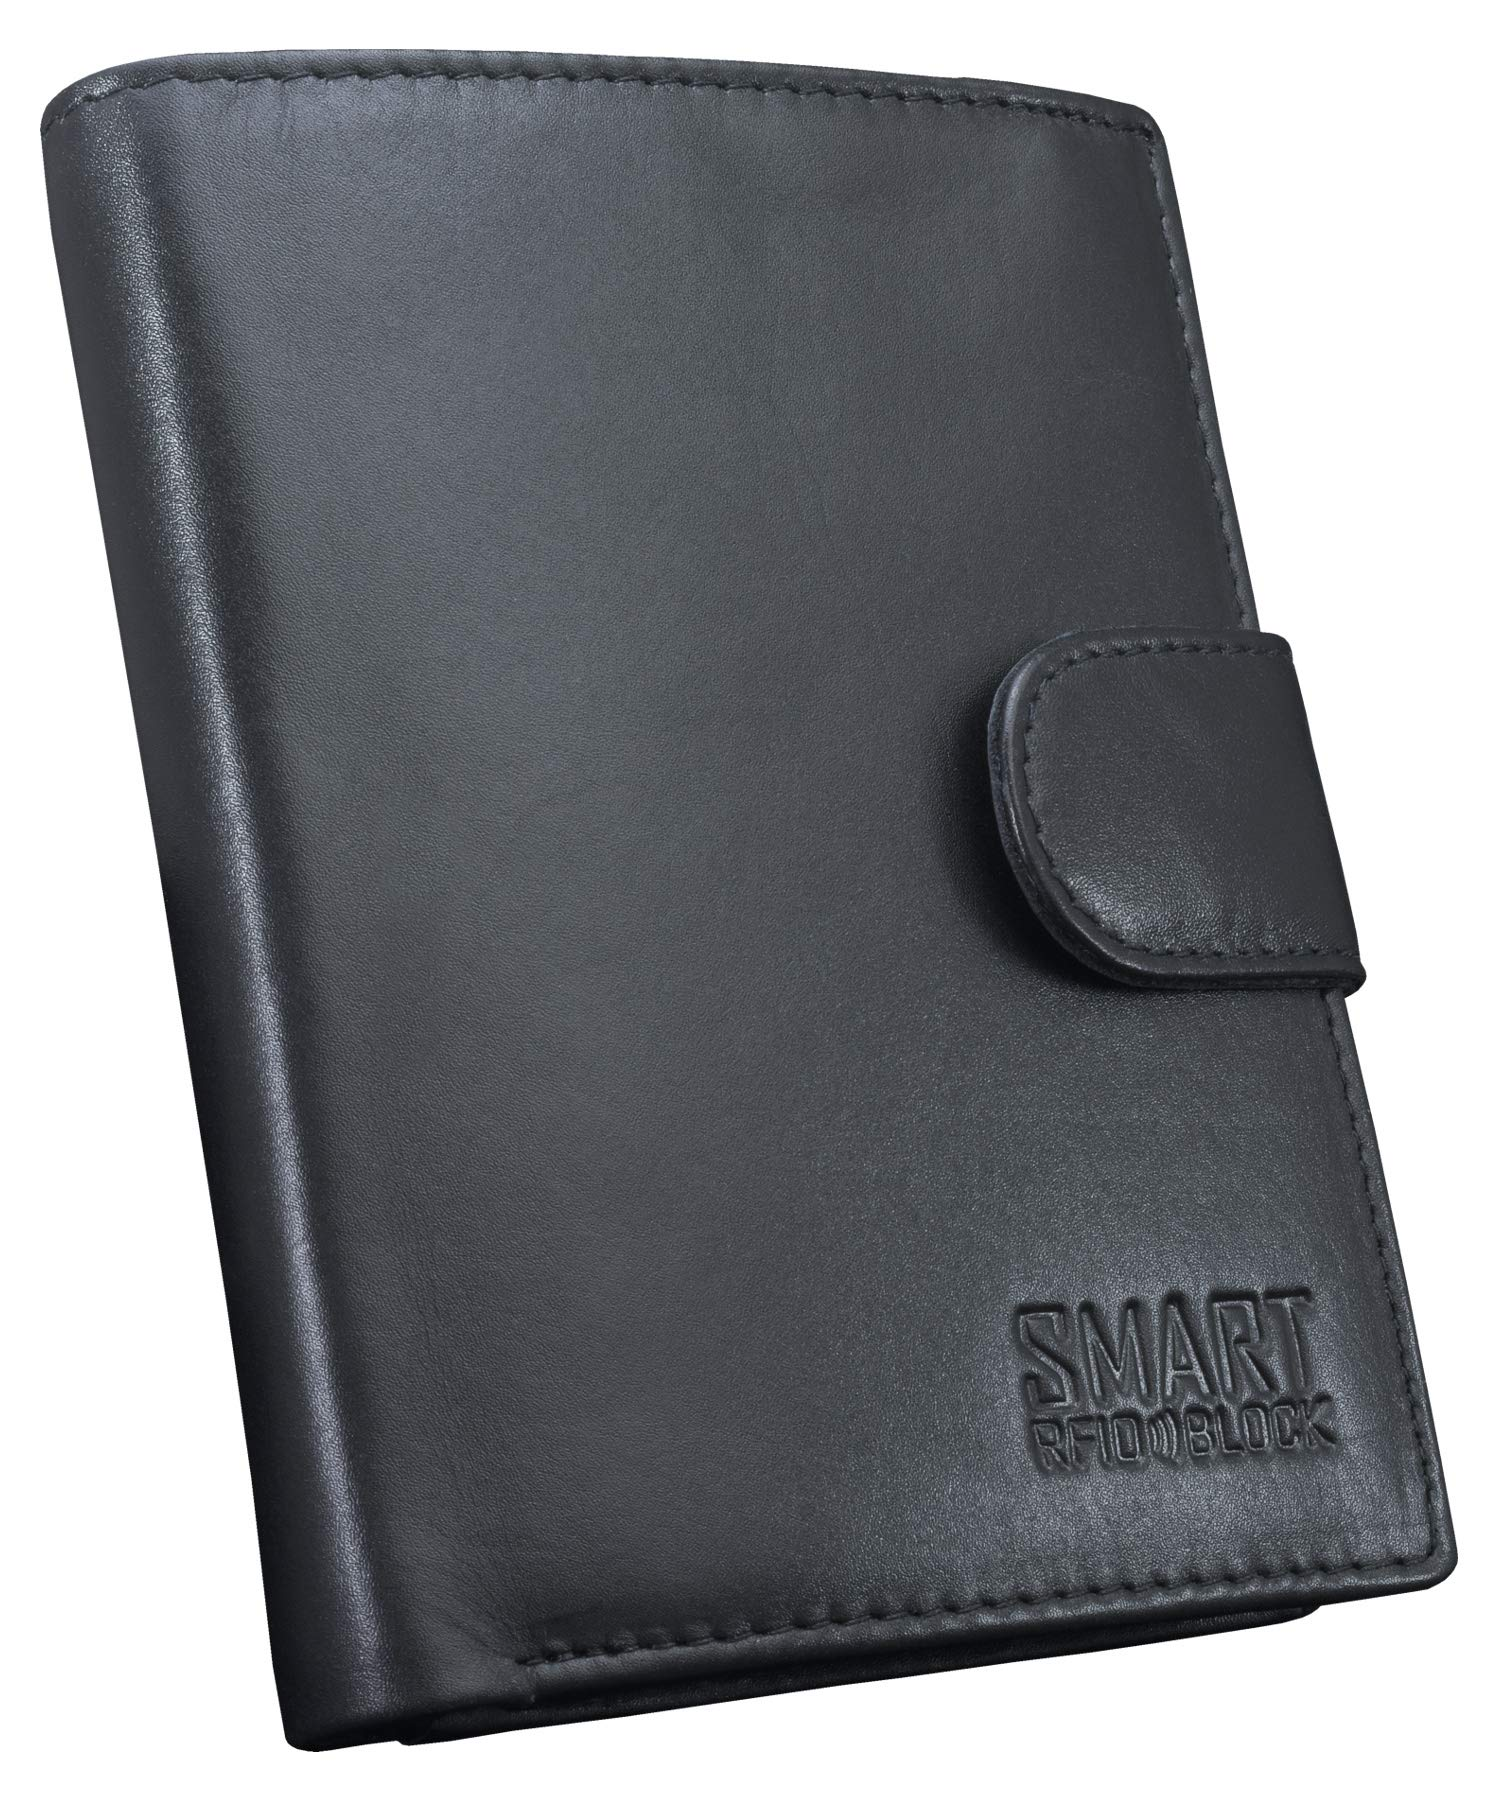 Contactless Card Protection RFID Wallet TUV TESTED /& CERTIFIED by KORUMA Black Genuine Cow Leather Picasso SMART RFID BLOCK collection SM-904PBL